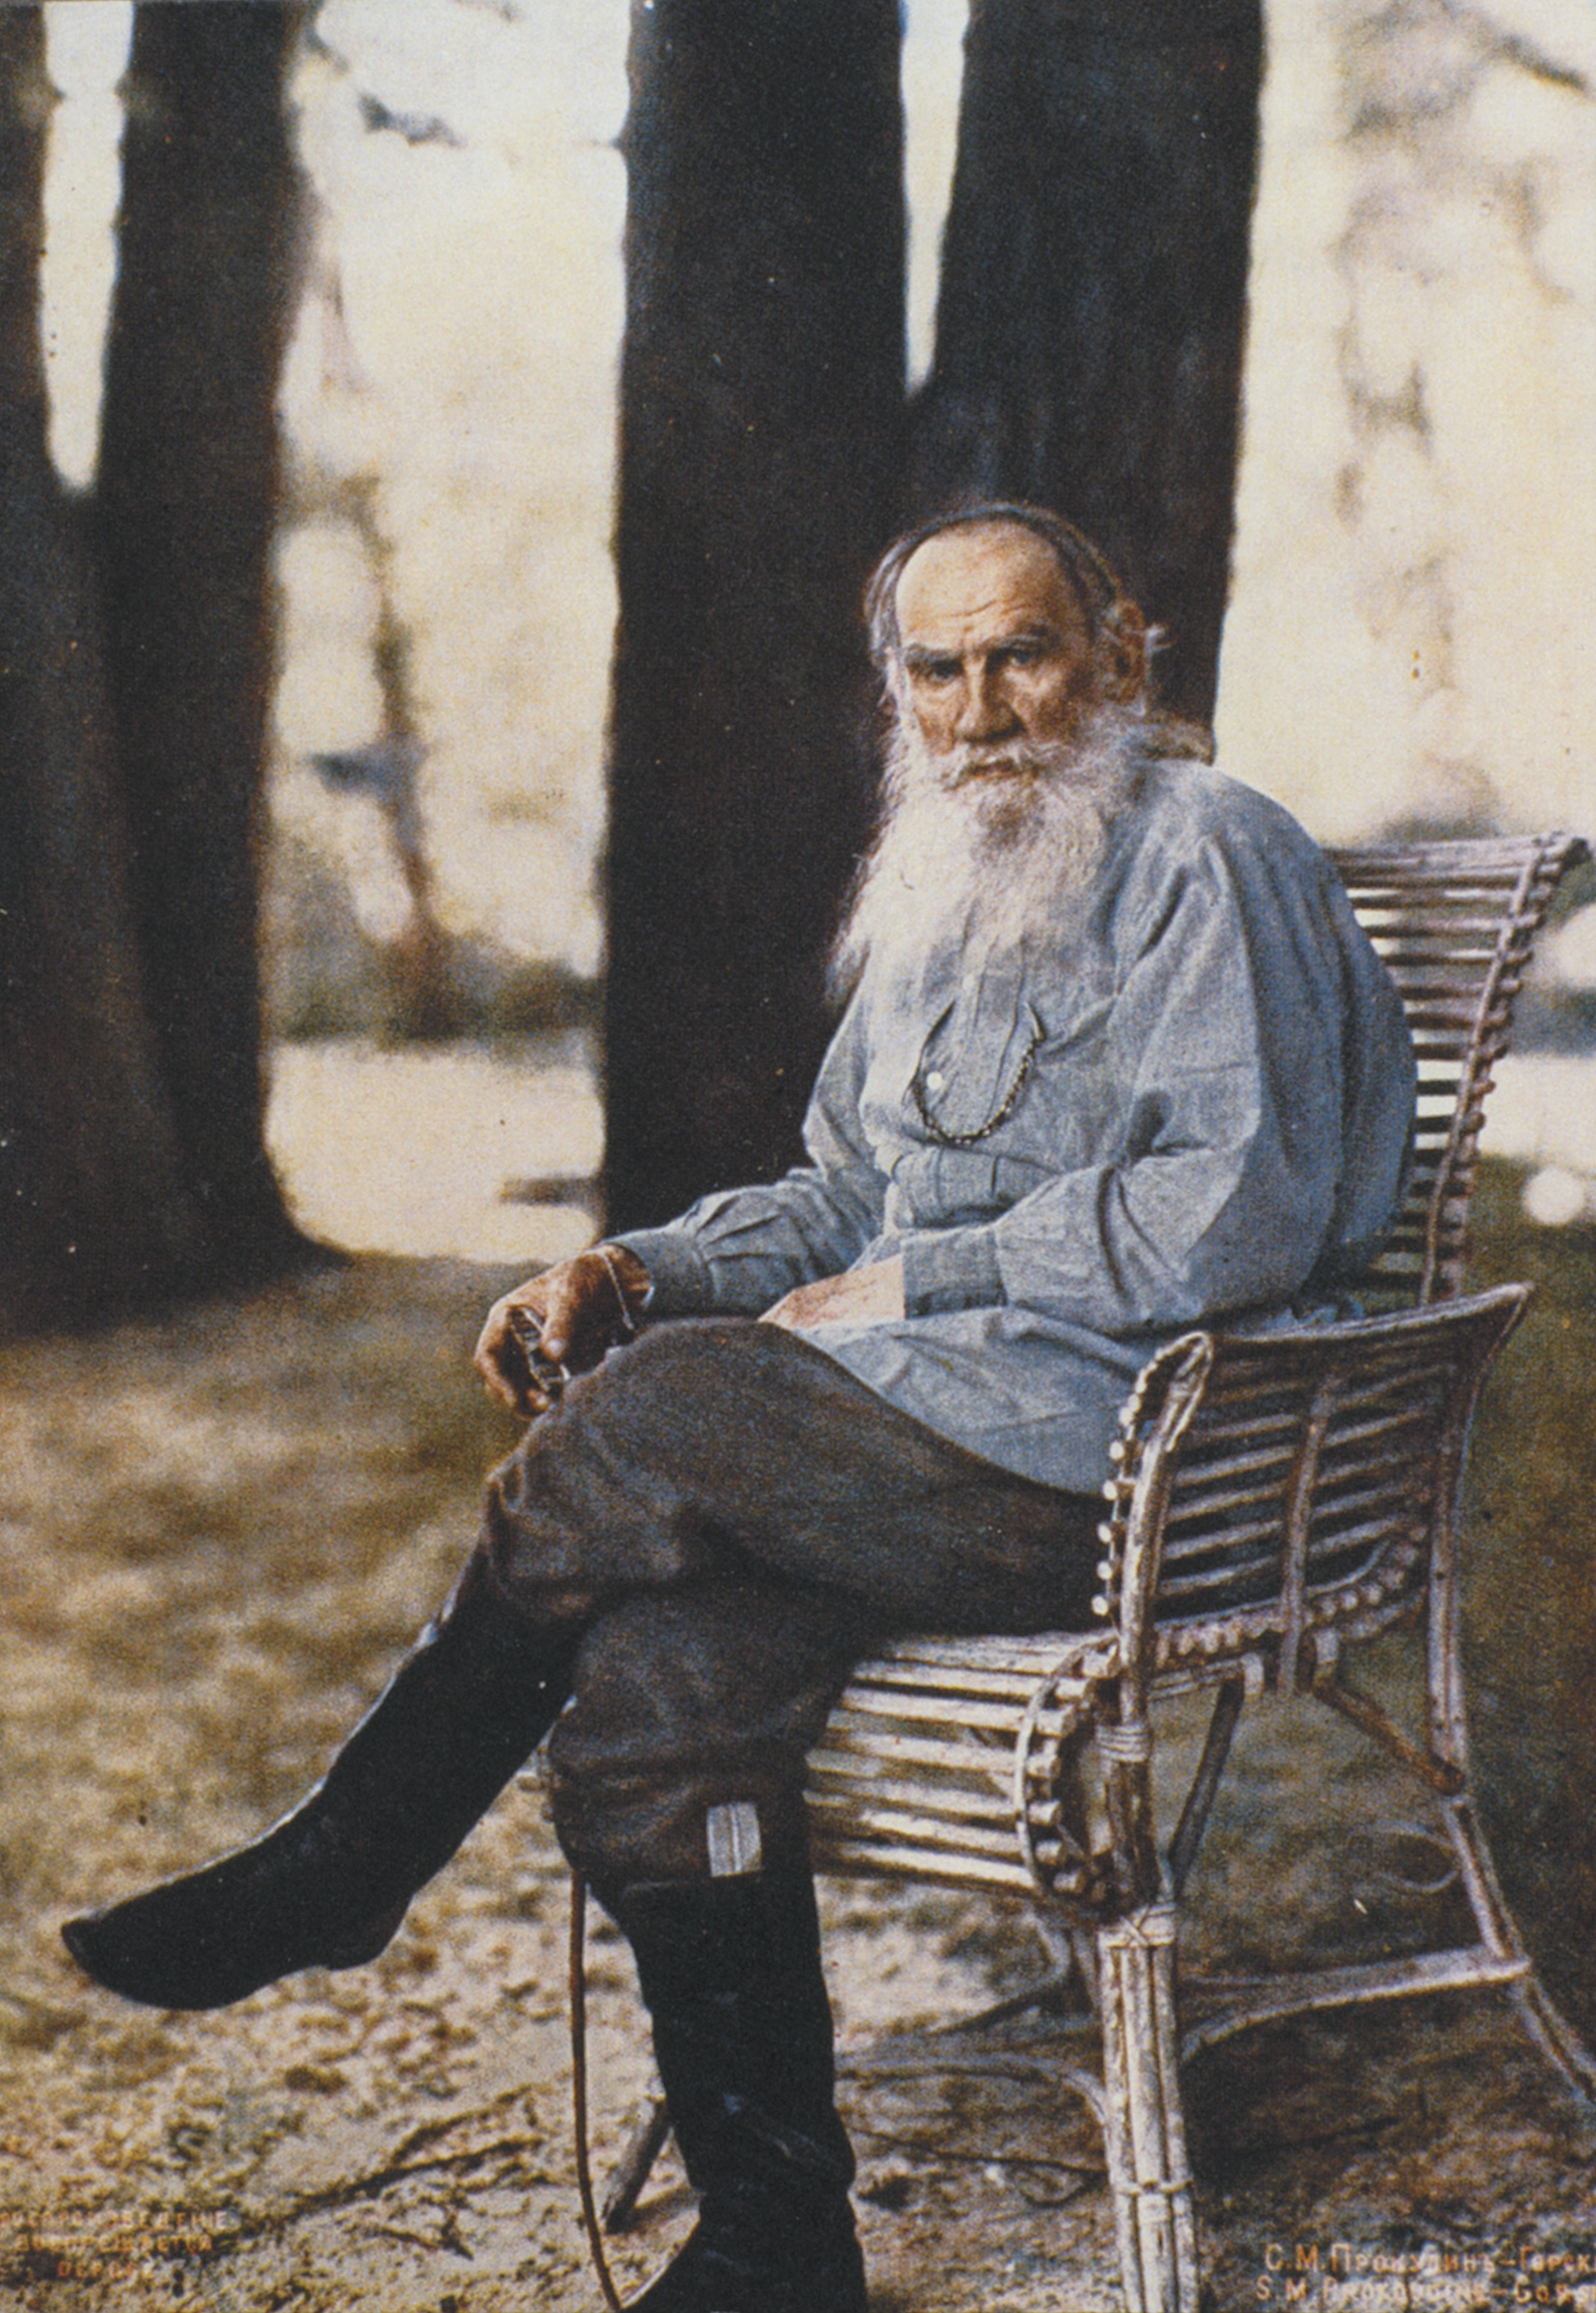 Leo Tolstoy at Yasnaya Polyana, the family estate where he wrote Anna Karenina, about 125 miles south of Moscow, May 1908